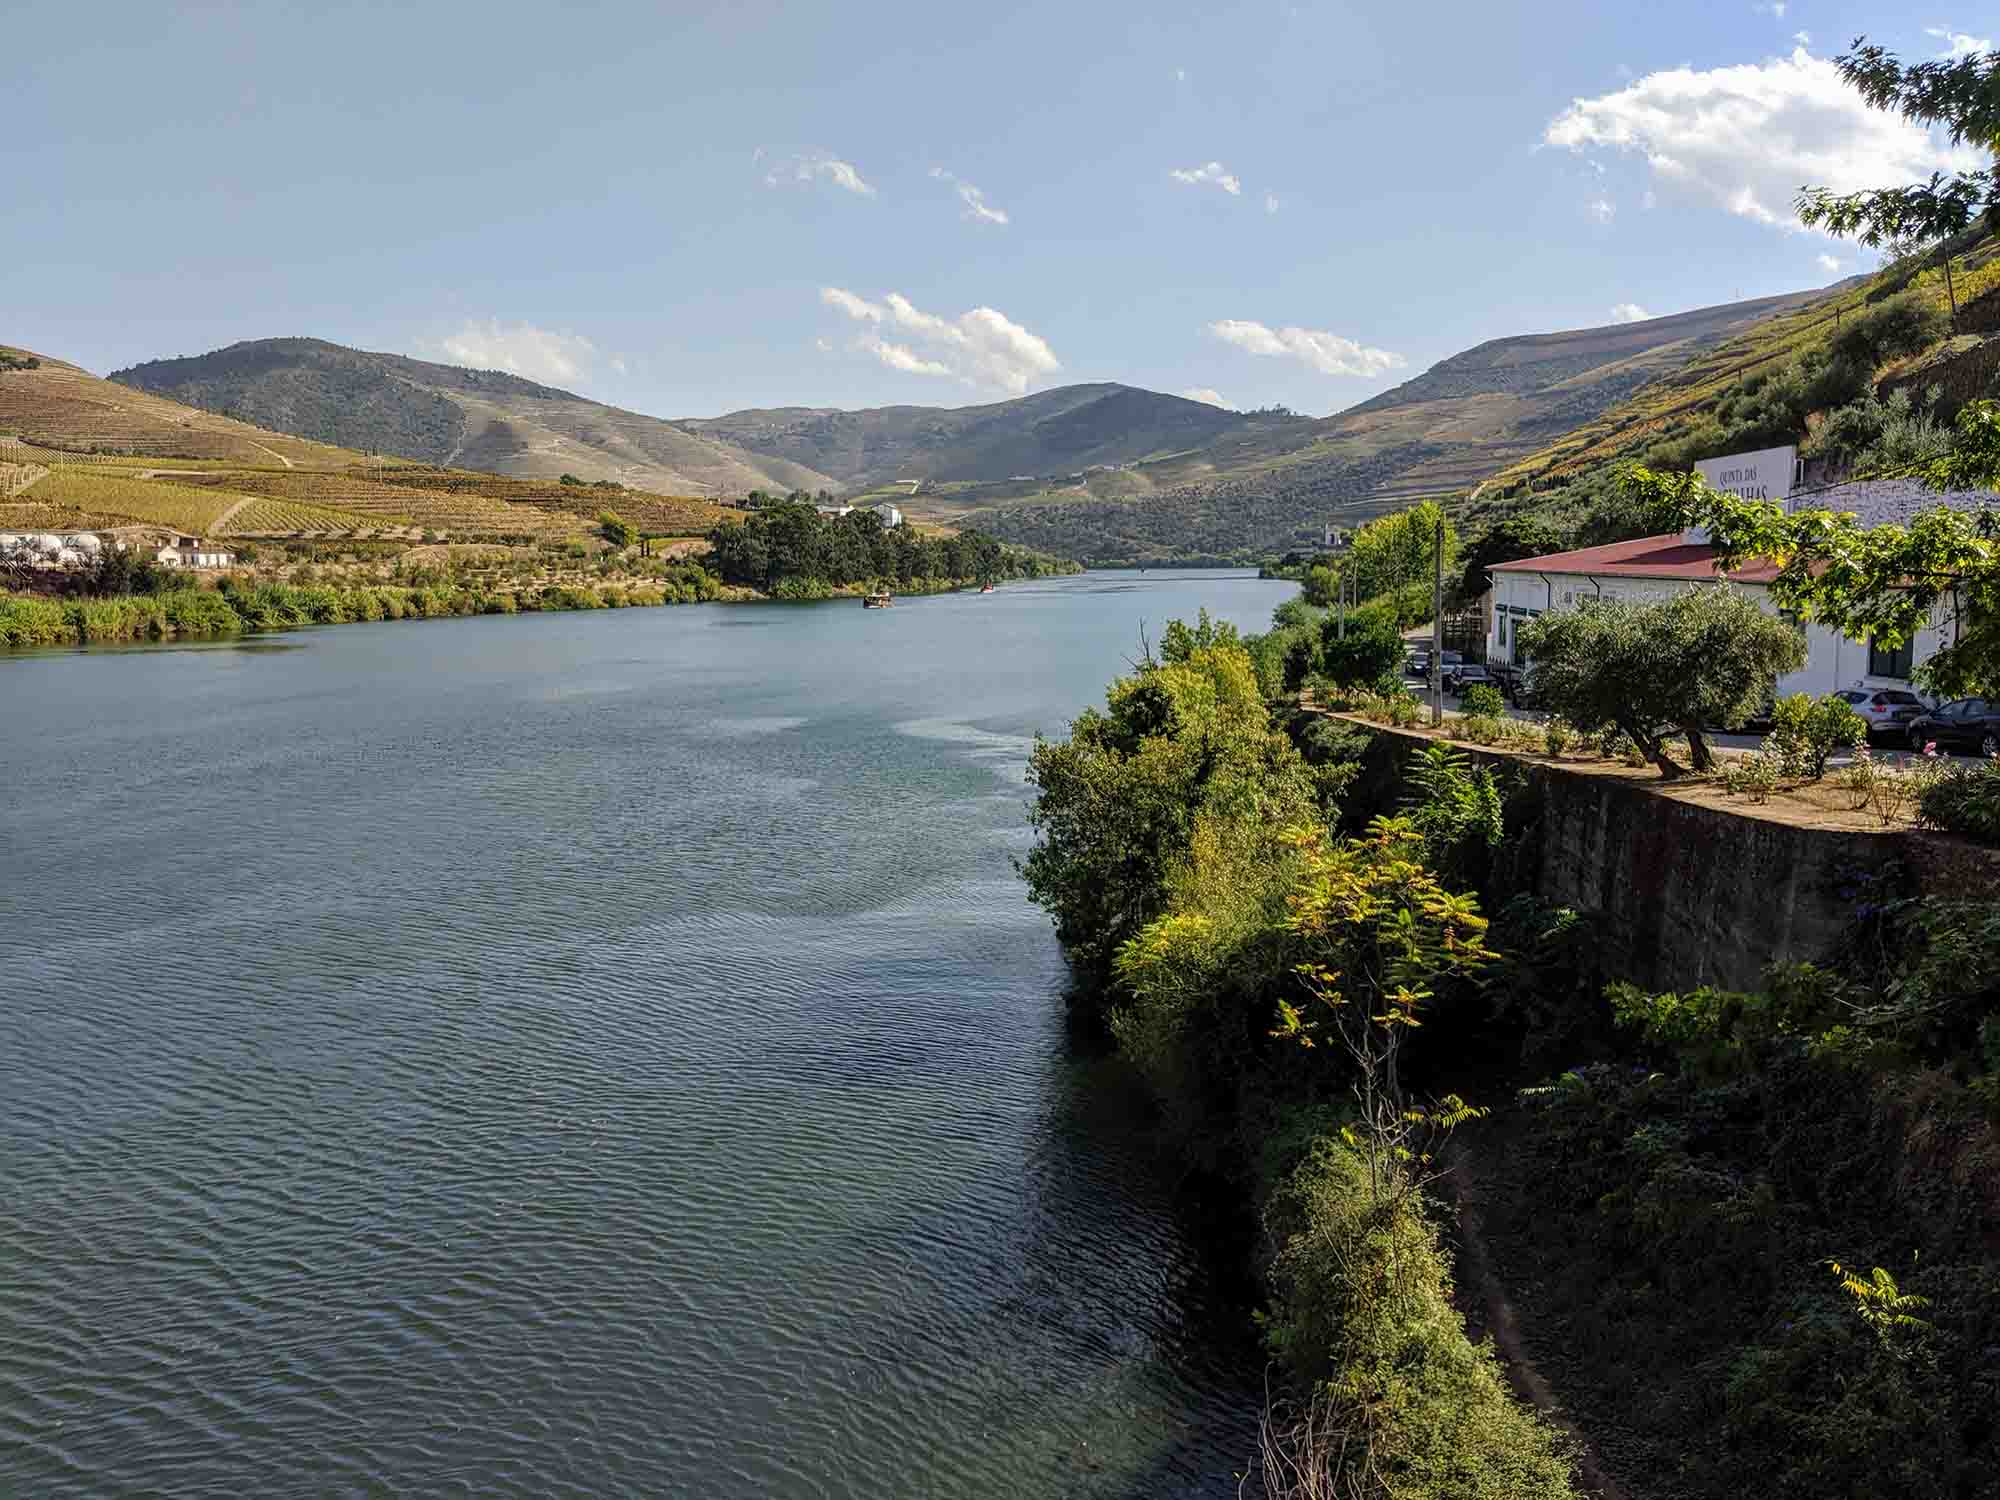 View of the Douro River from Pinhao